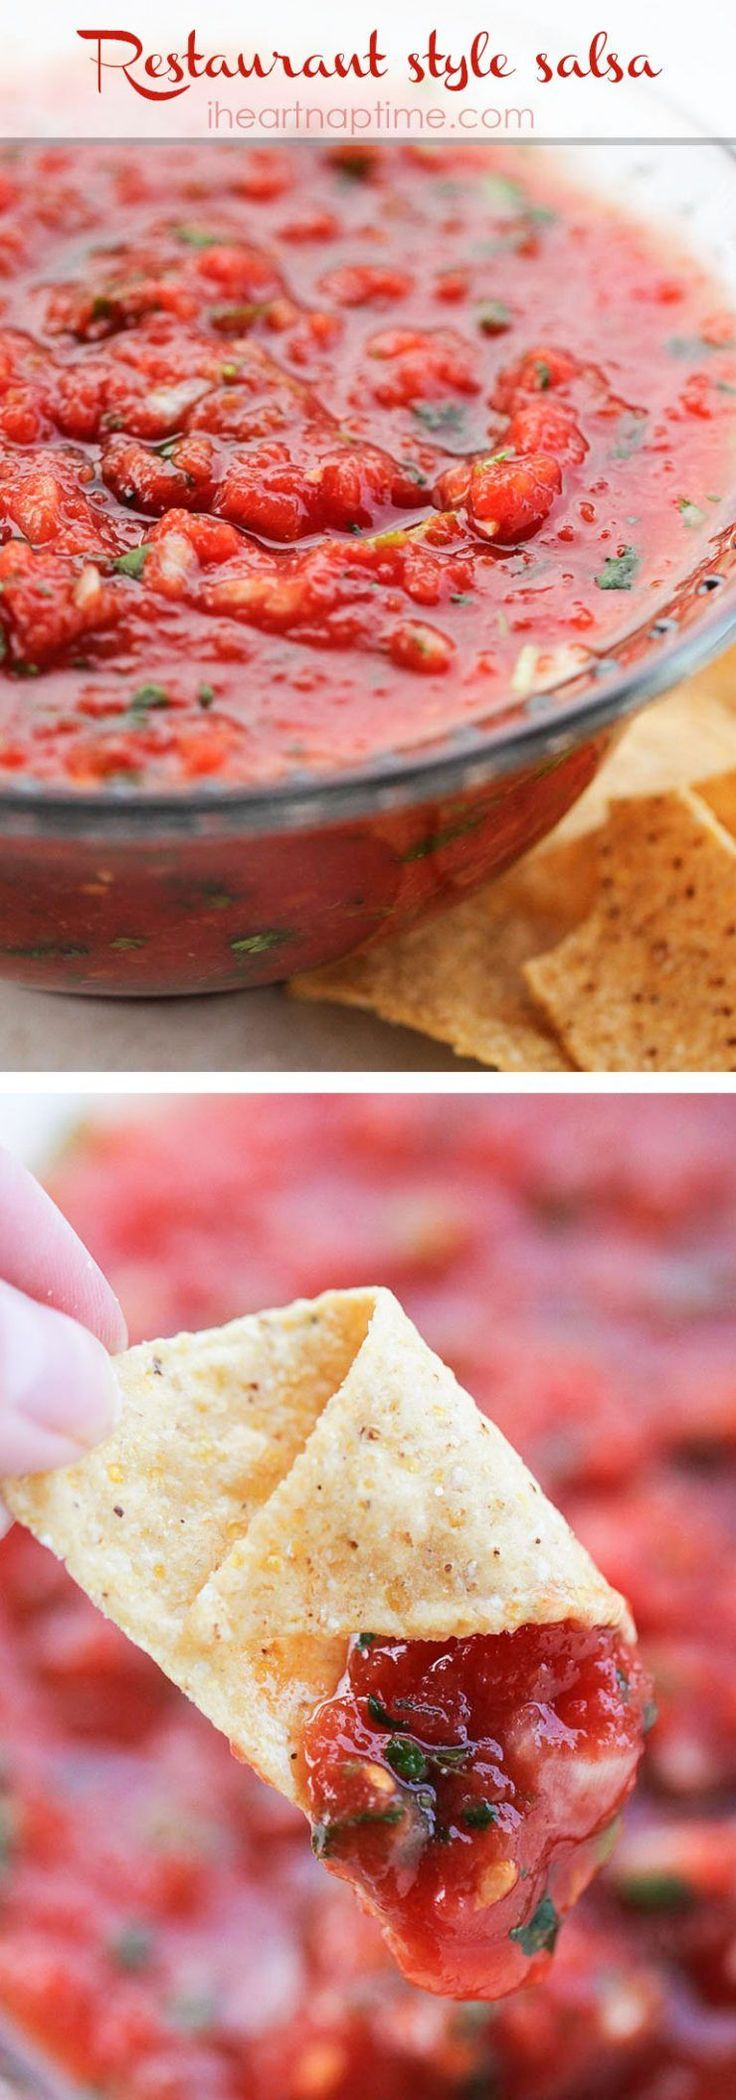 Homemade restaurant style salsa... the best recipe out there!